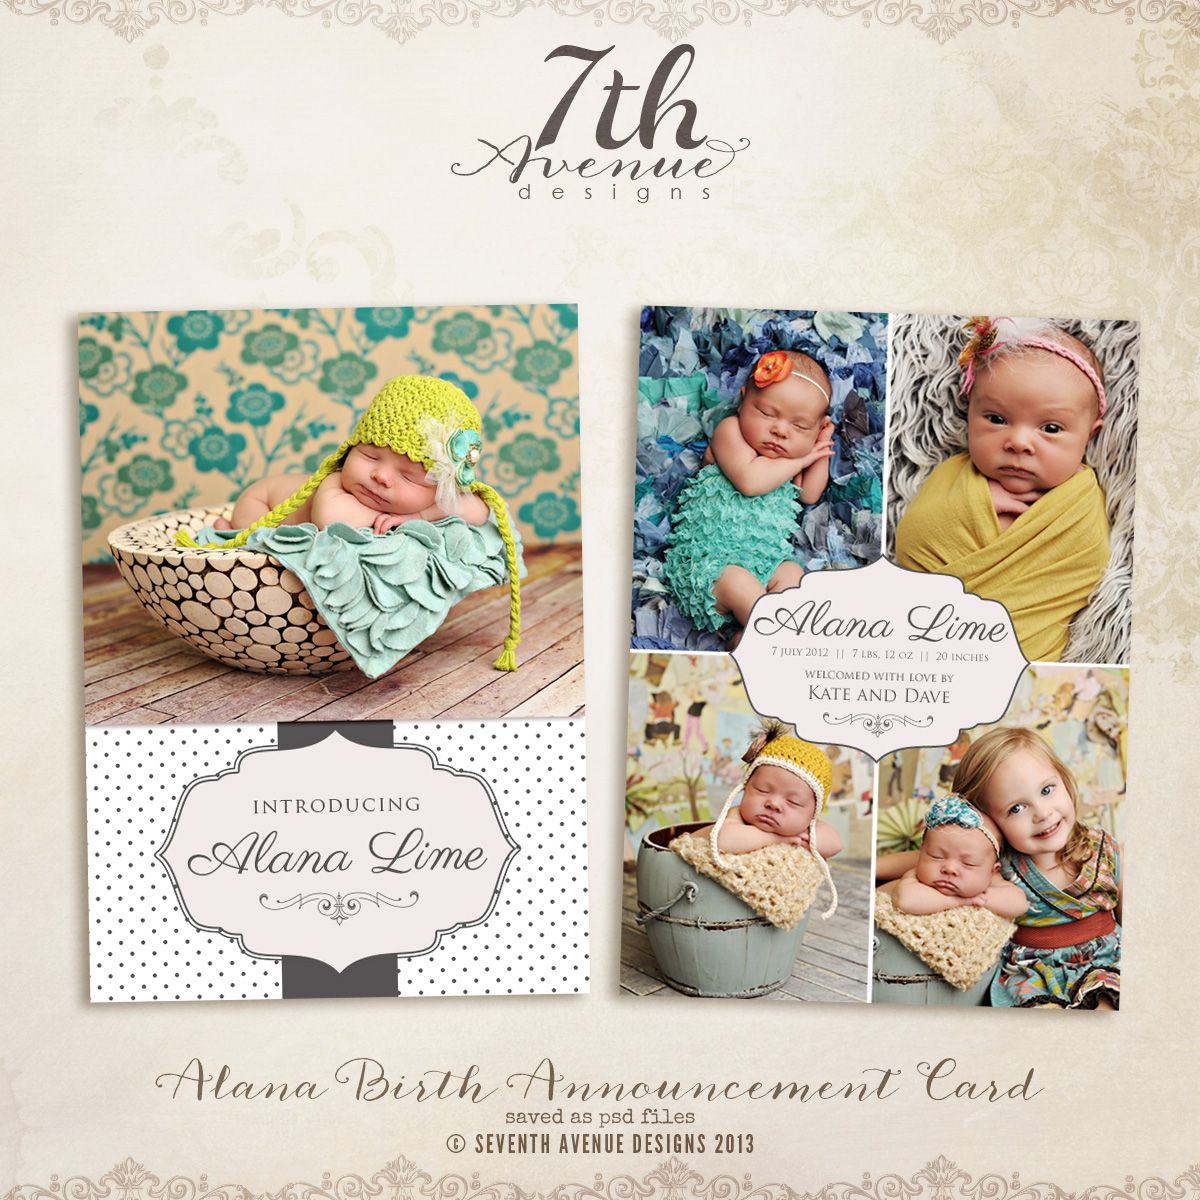 Alana Birth Announcement Card Templates cardsalanabac 400 – Birth Announcement Card